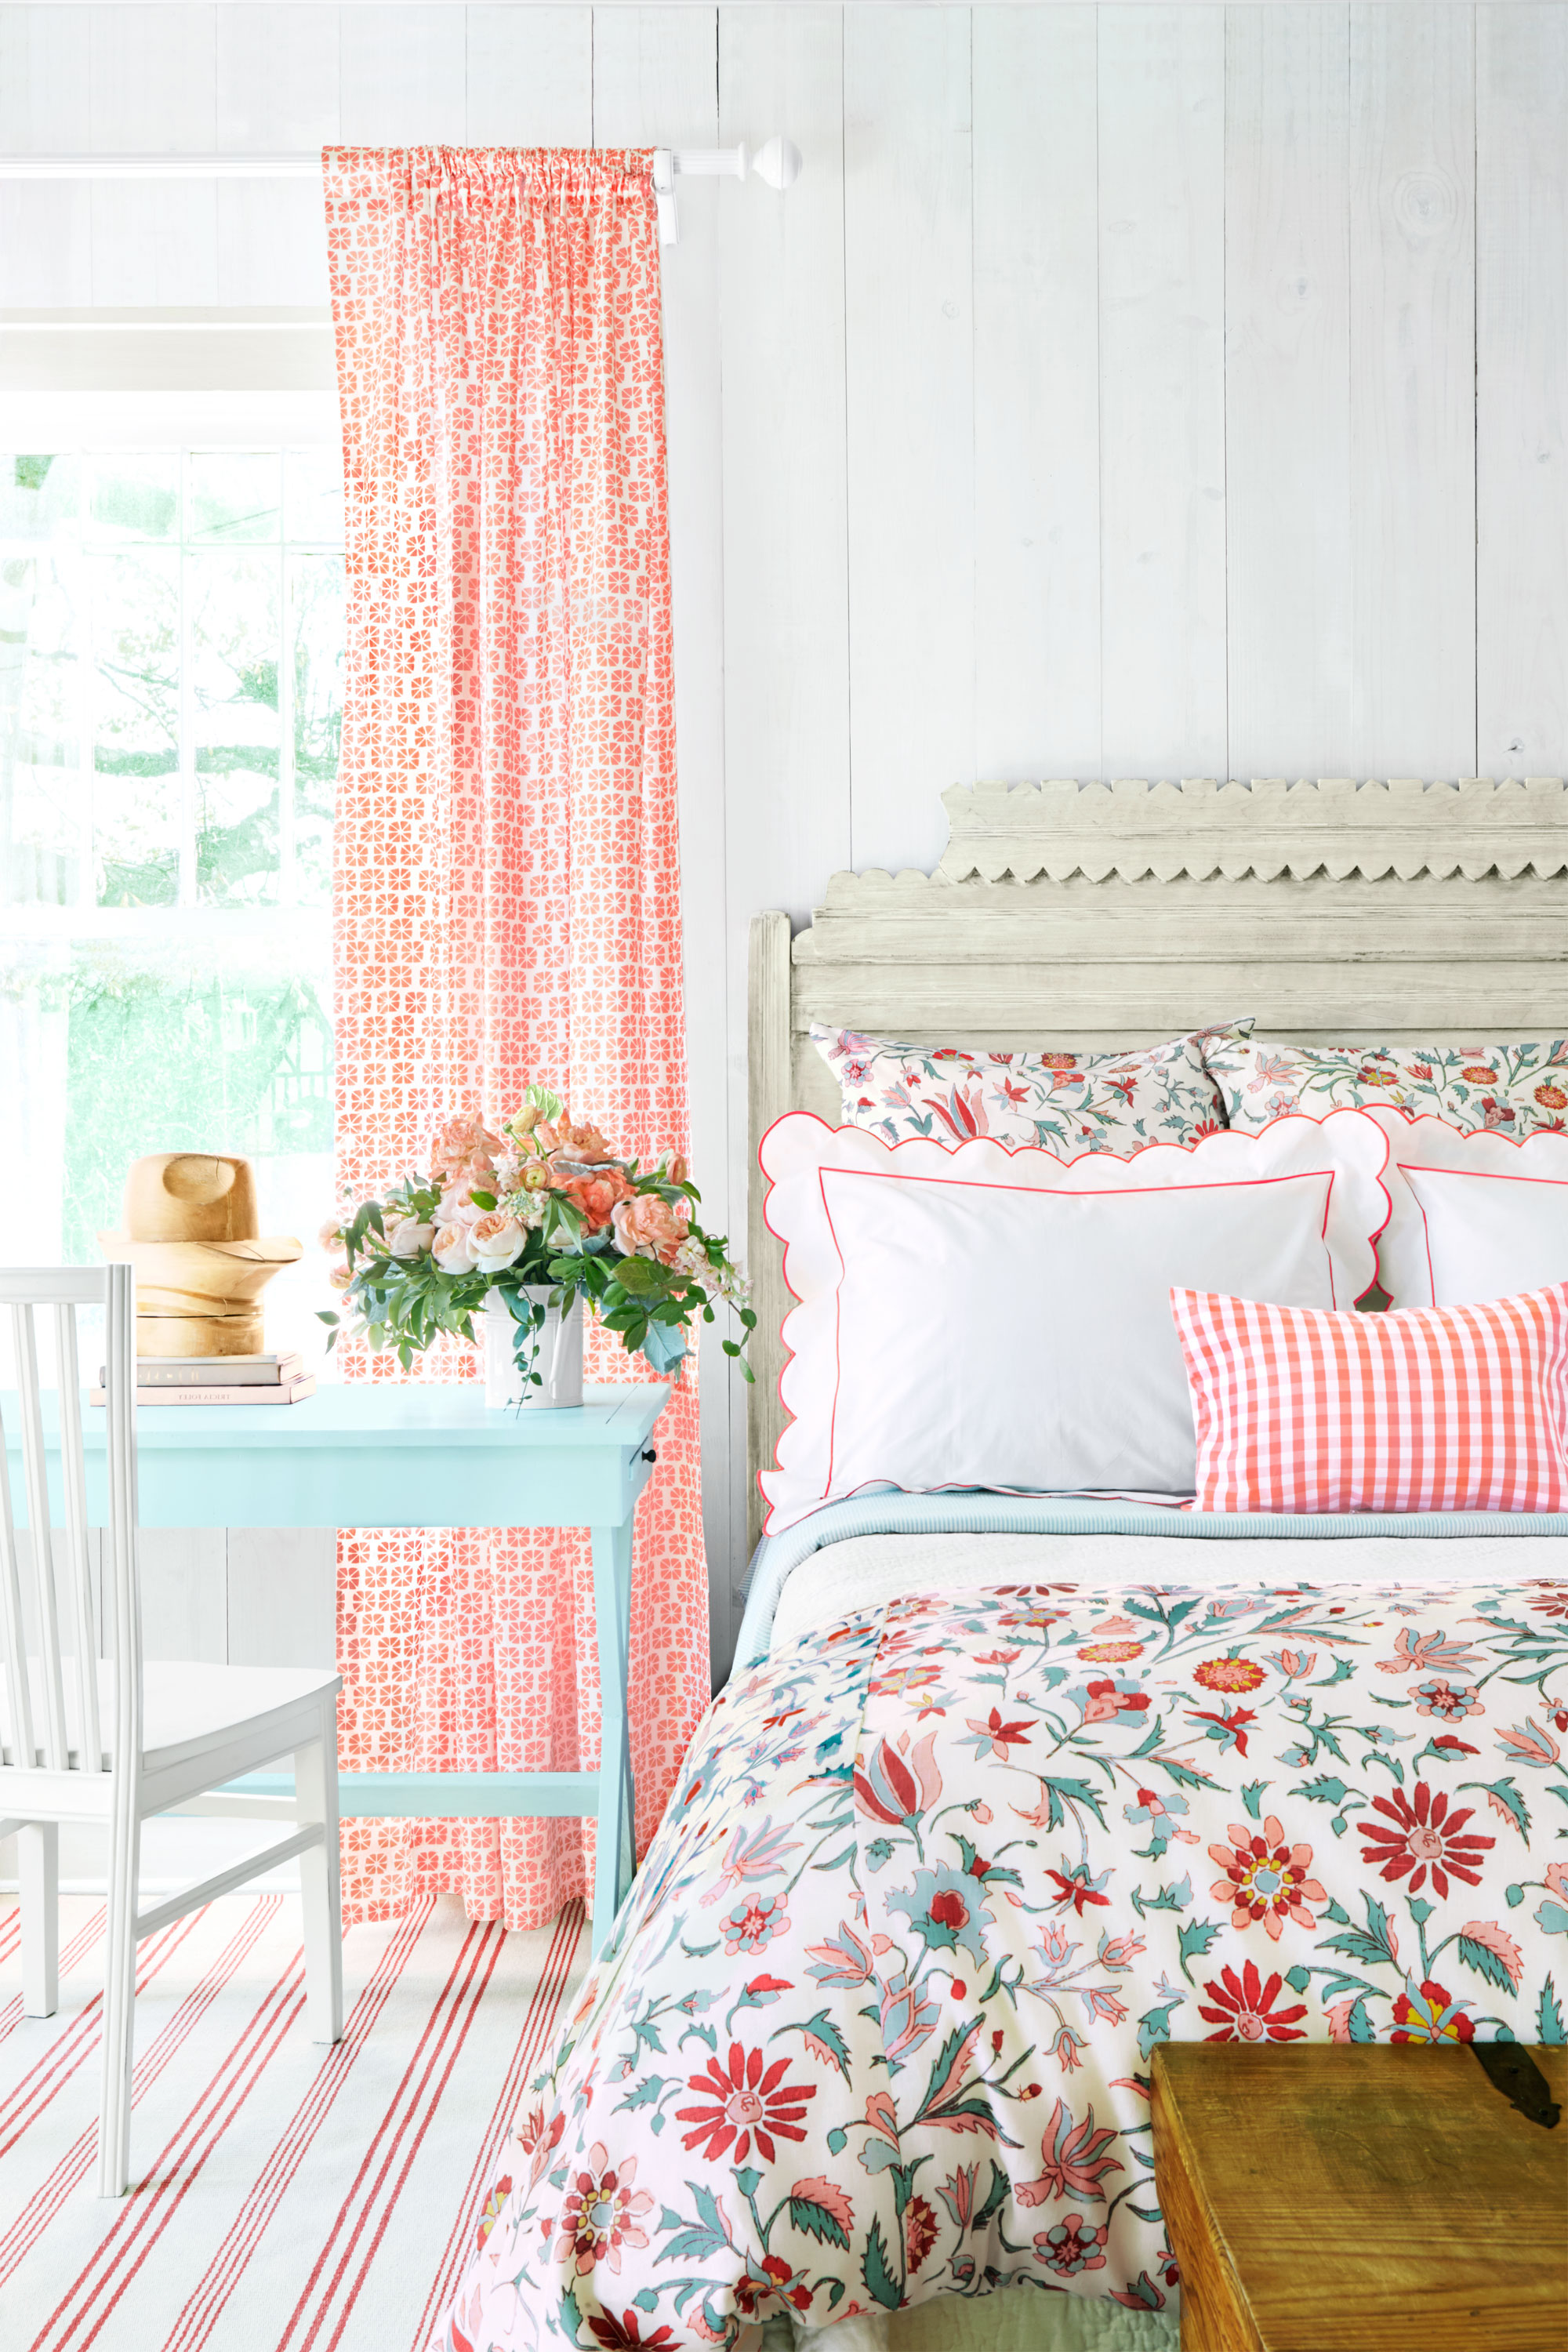 101 Bedroom Decorating Ideas in 2016 - Designs for ... on Beautiful Room Design For Girl  id=62469